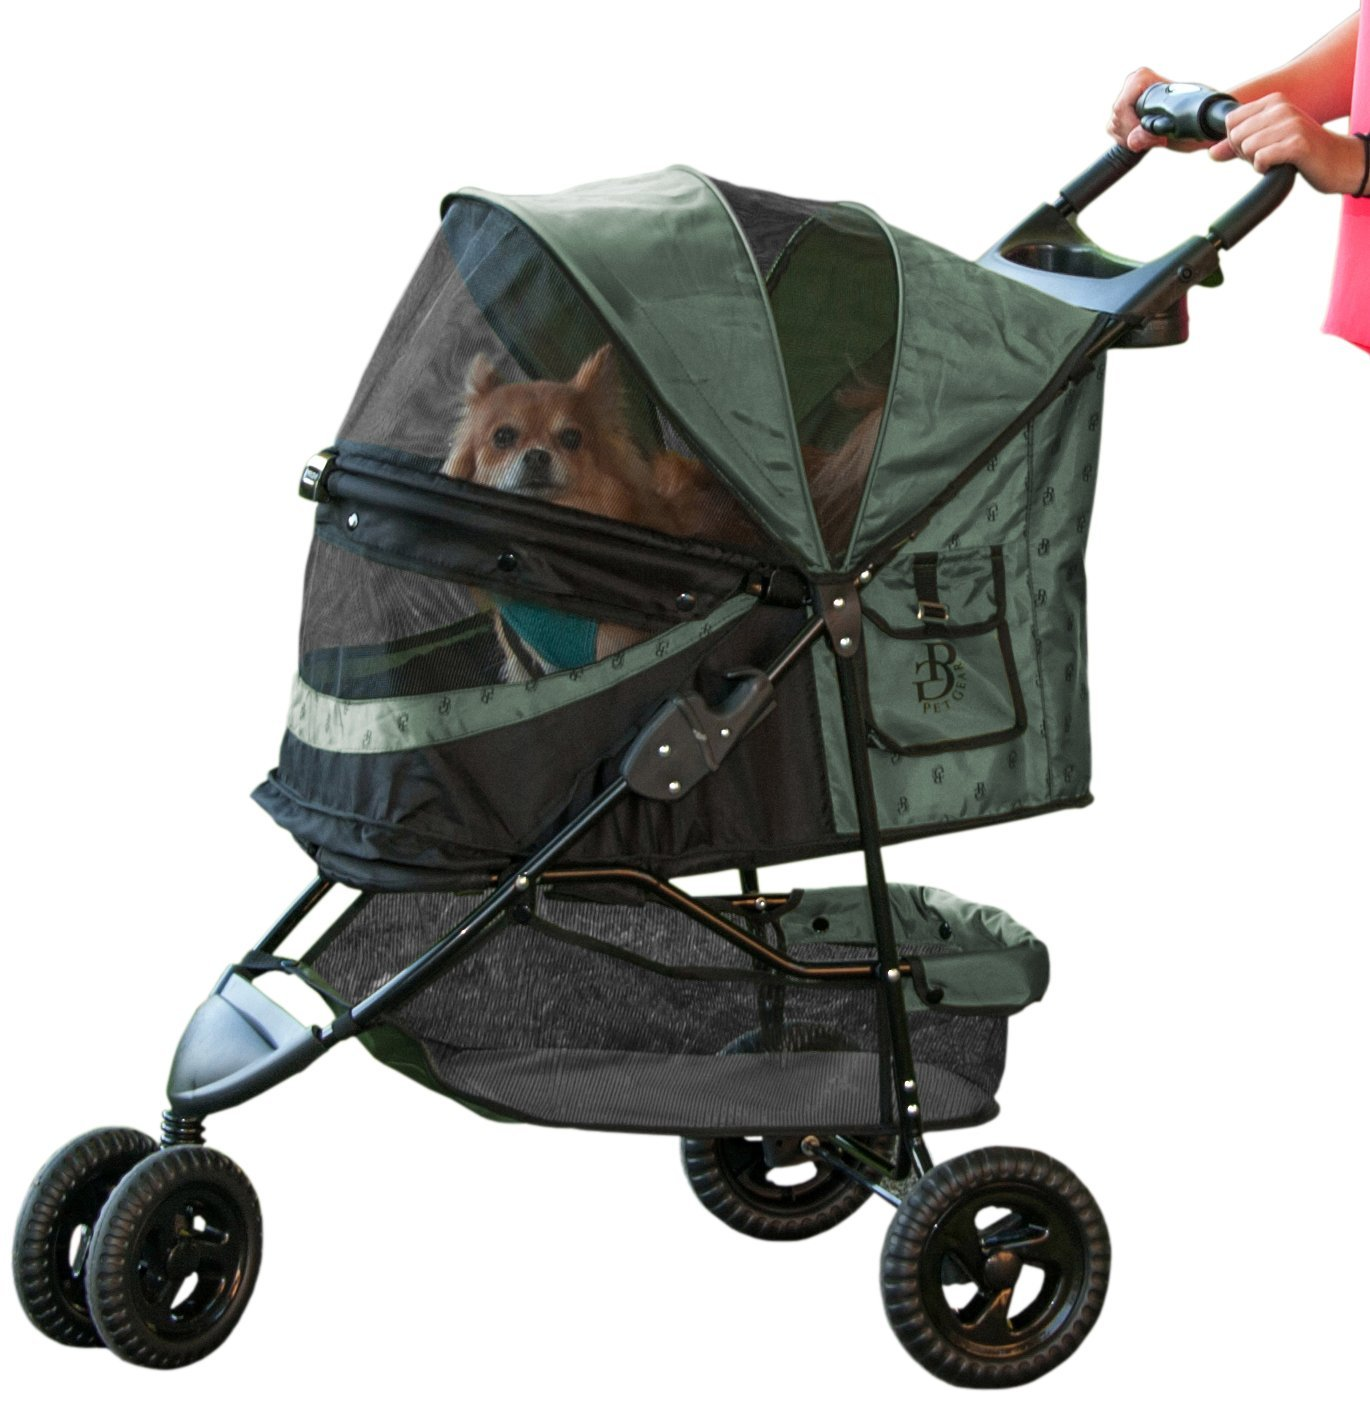 Pet Gear No-Zip Special Edition Pet Stroller, Zipperless Entry, Sage by Vermont Juvenile MFG DBA (Pet Gear) (Image #1)